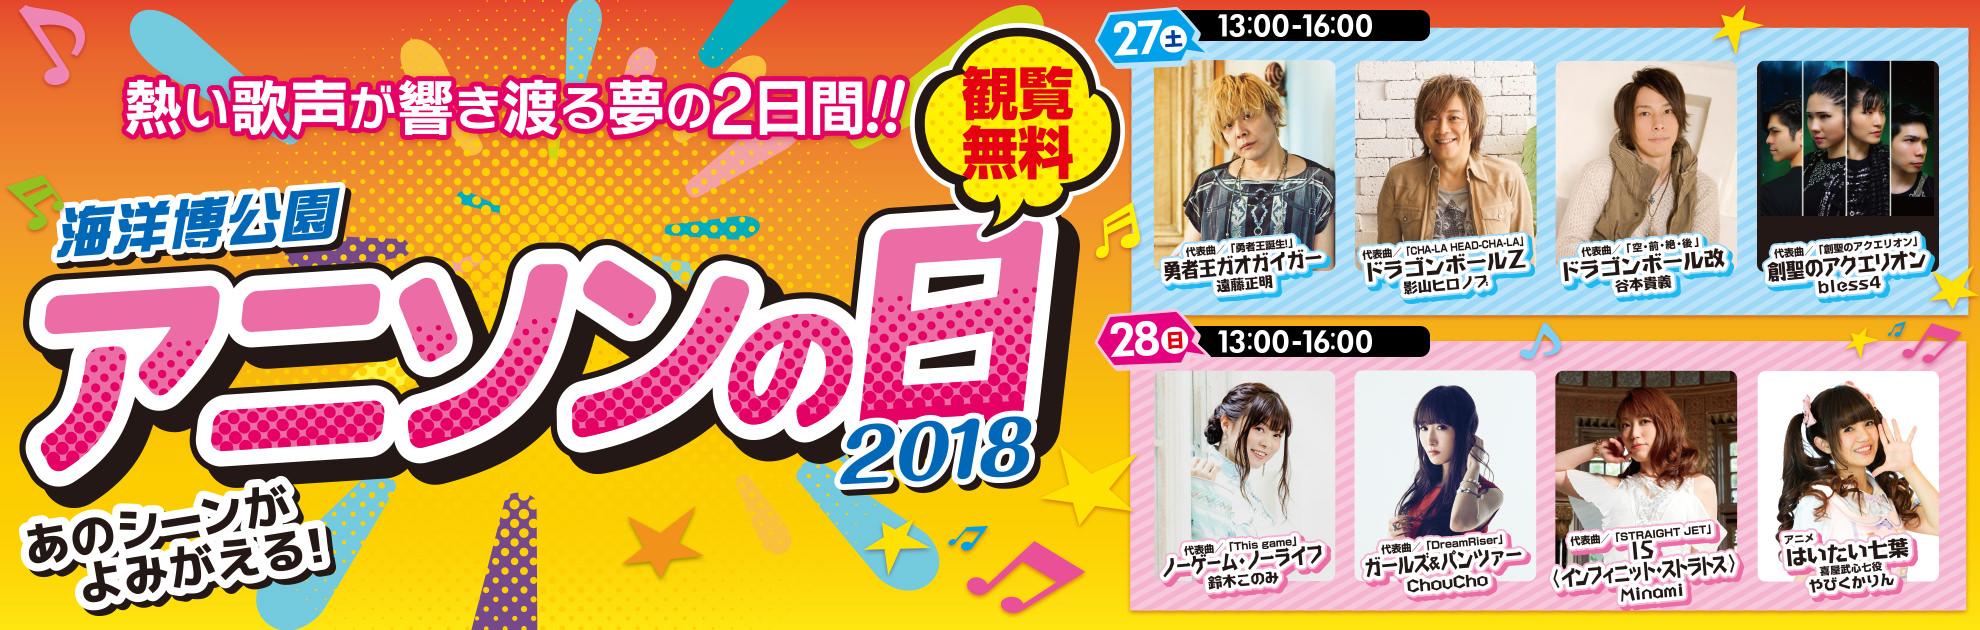 Decision held on day of Ocean Expo Park anison on 2018! Two days of dream that hot singing voice echoes!